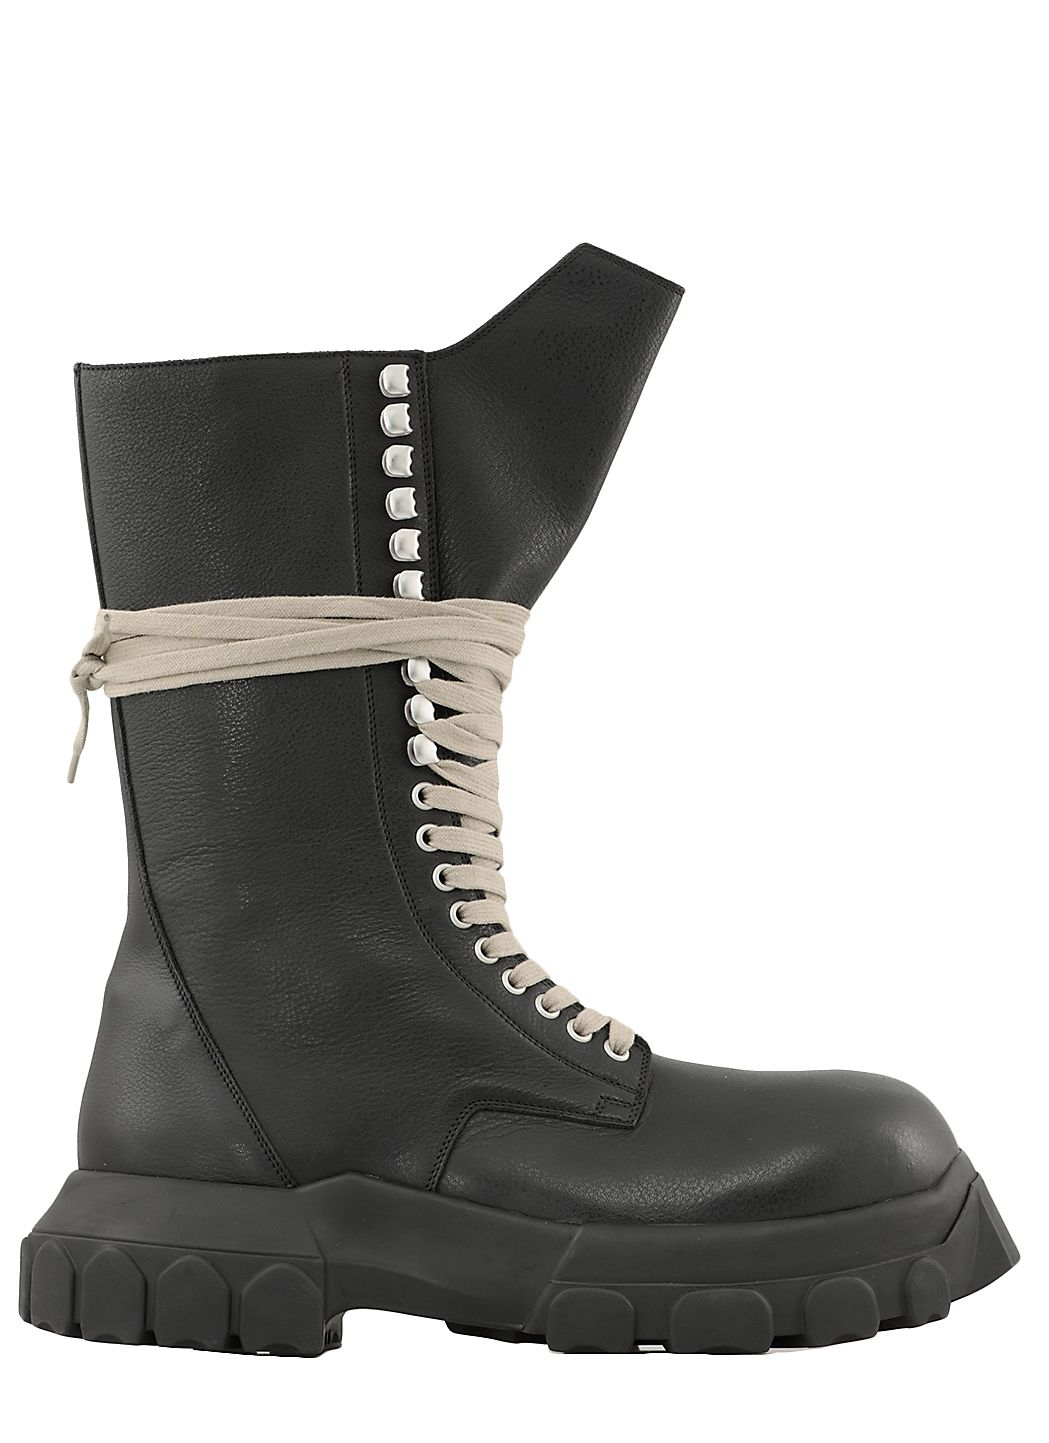 Performa Mega Bozo Lace up Tractor Boot